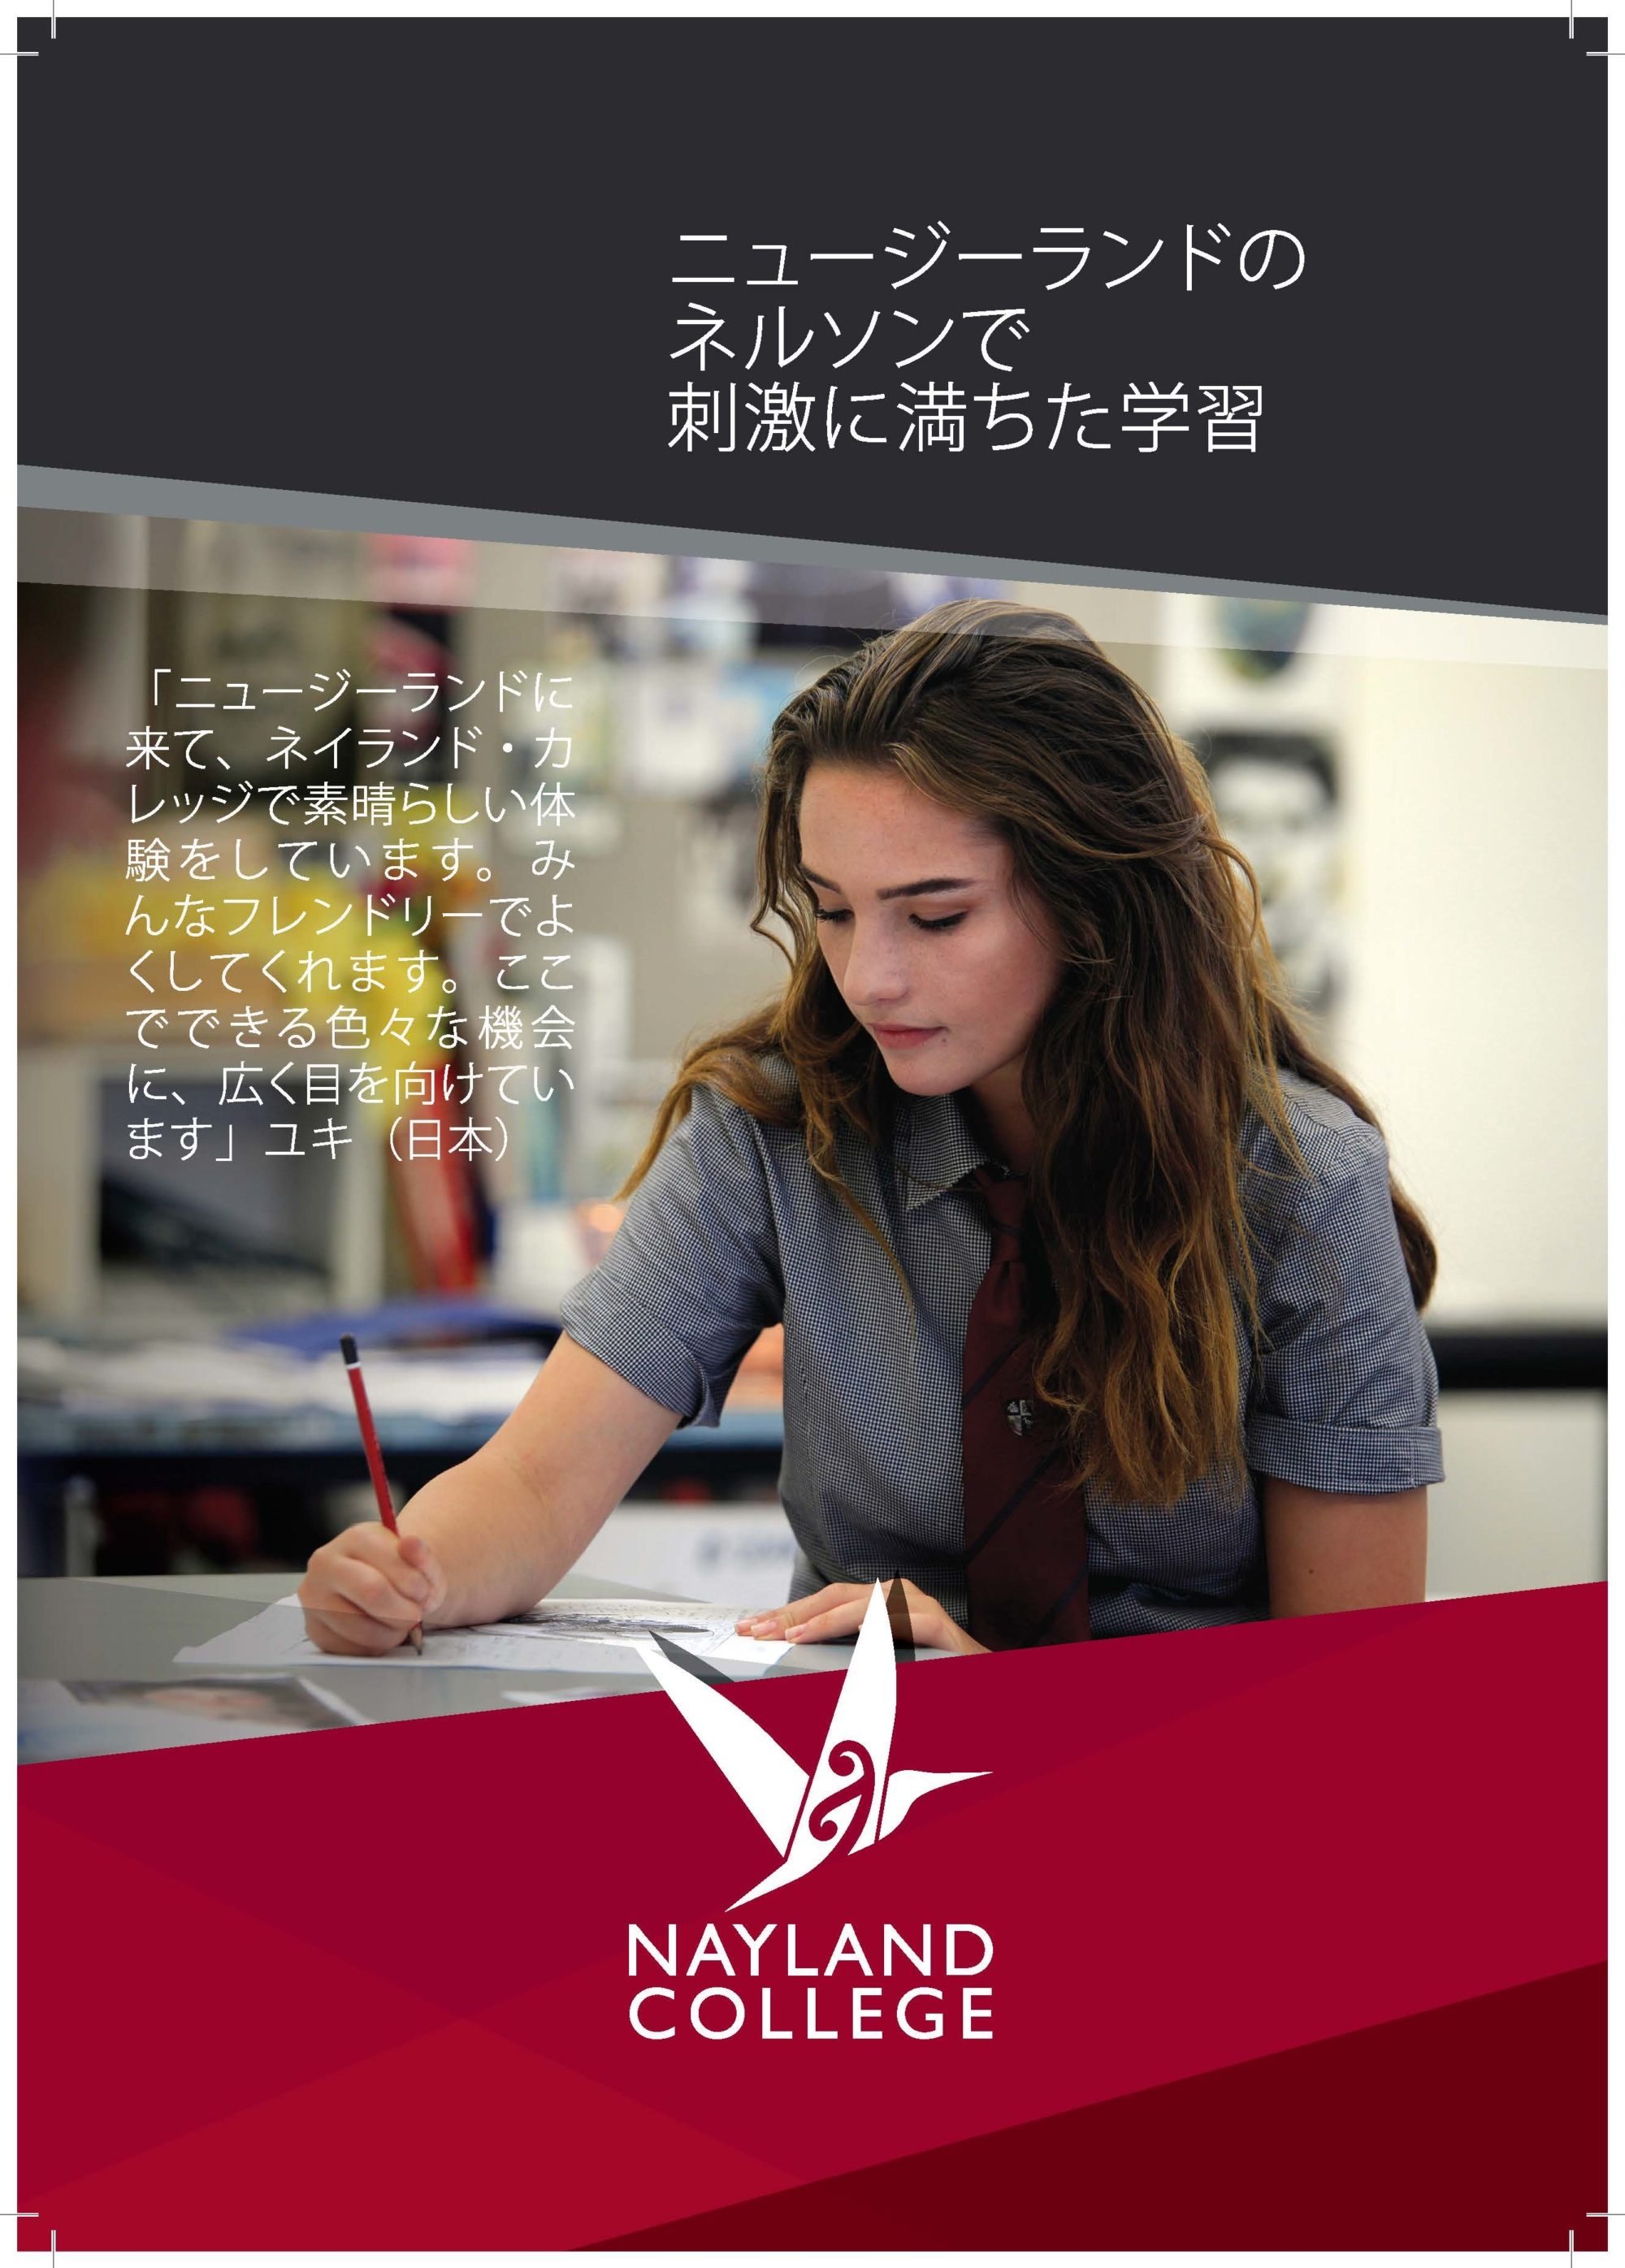 25117 - International Prospectus 2019 - Japanese (content is the previous version)_Page_1